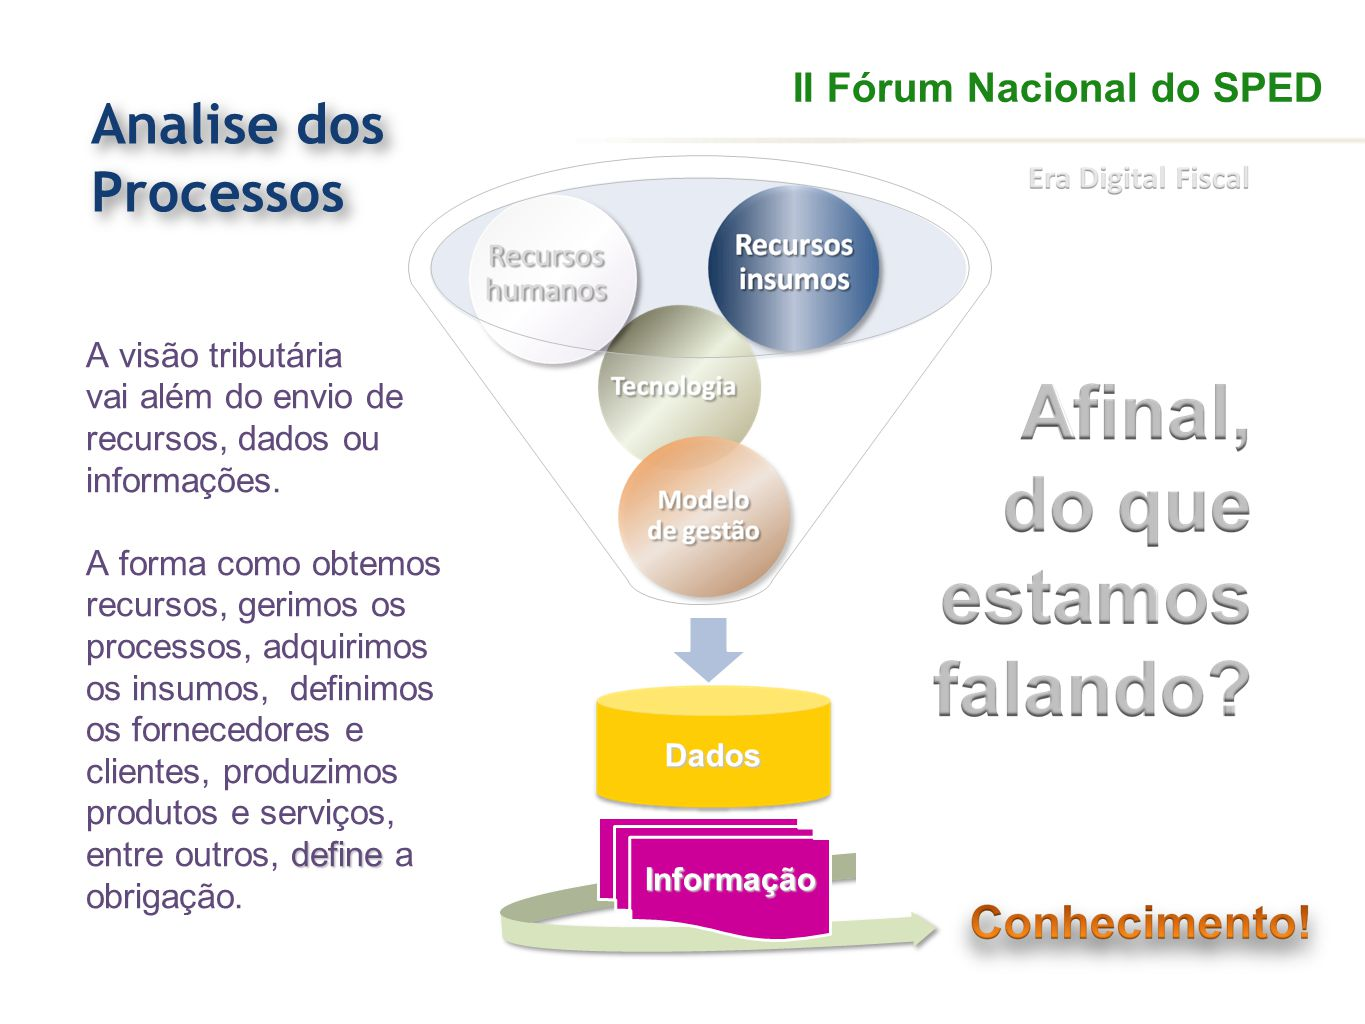 Analise dos Processos II Fórum Nacional do SPED